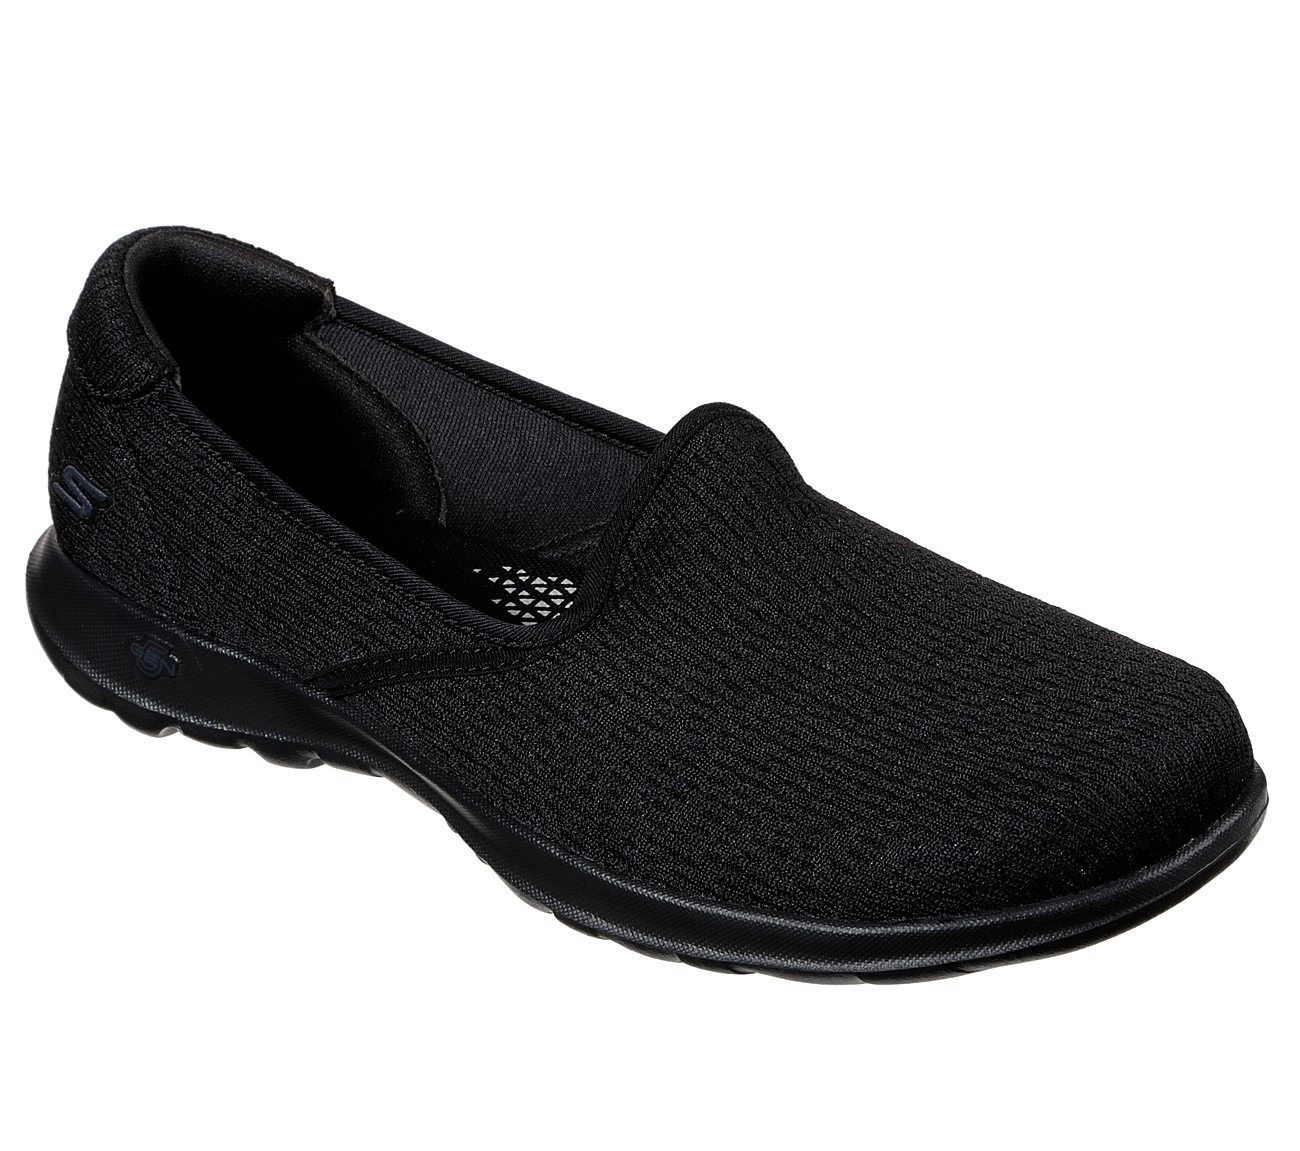 skechers performance shoes